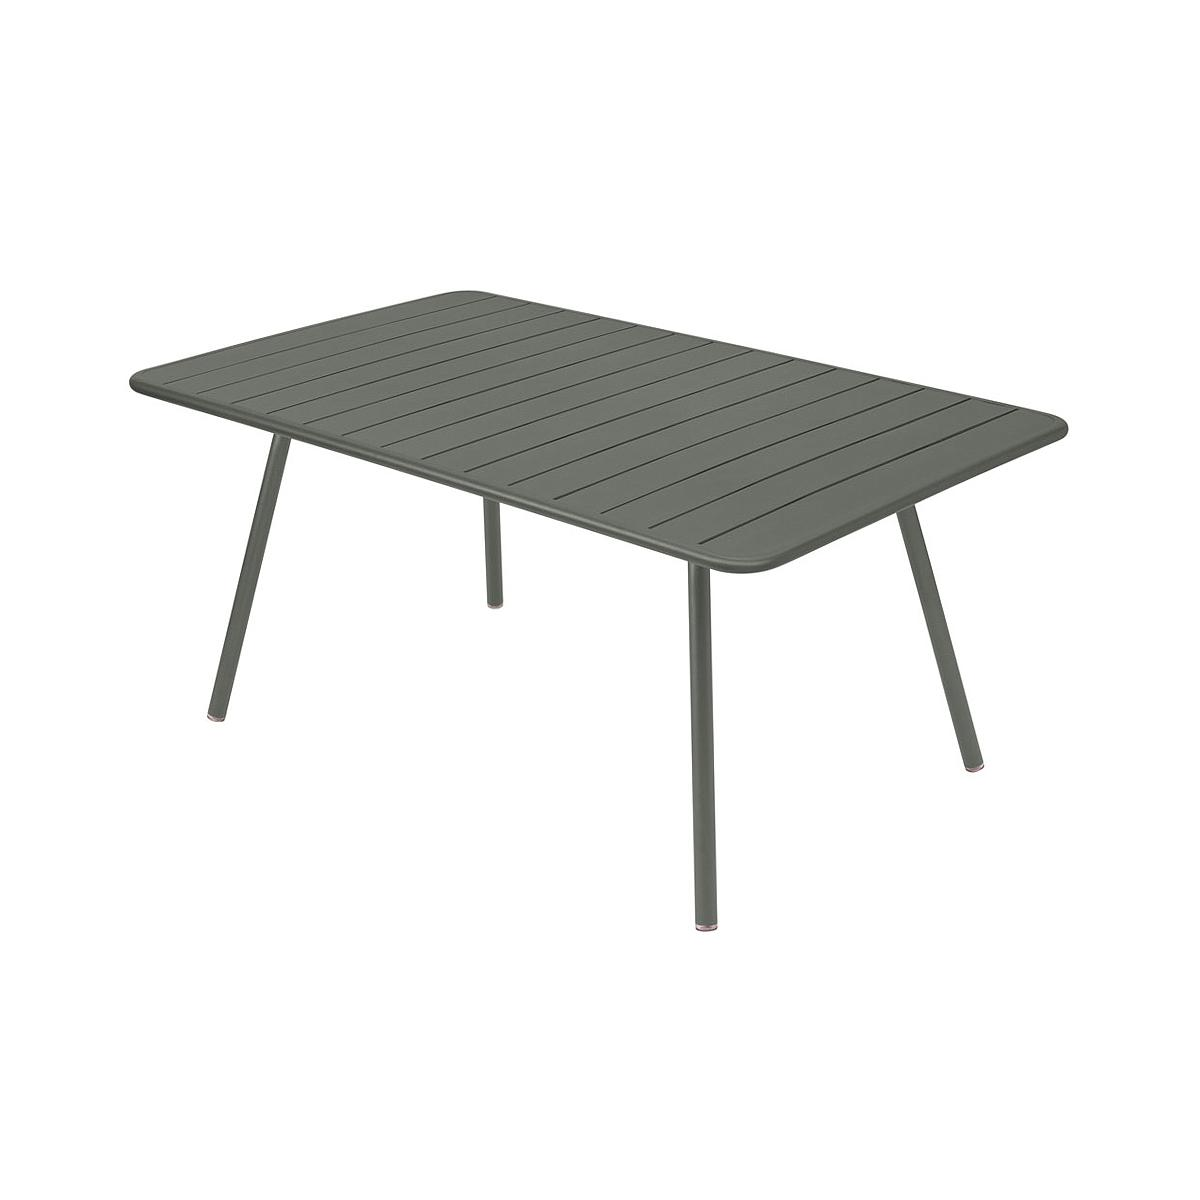 LUXEMBOURG by Fermob Table confort 6 romarin